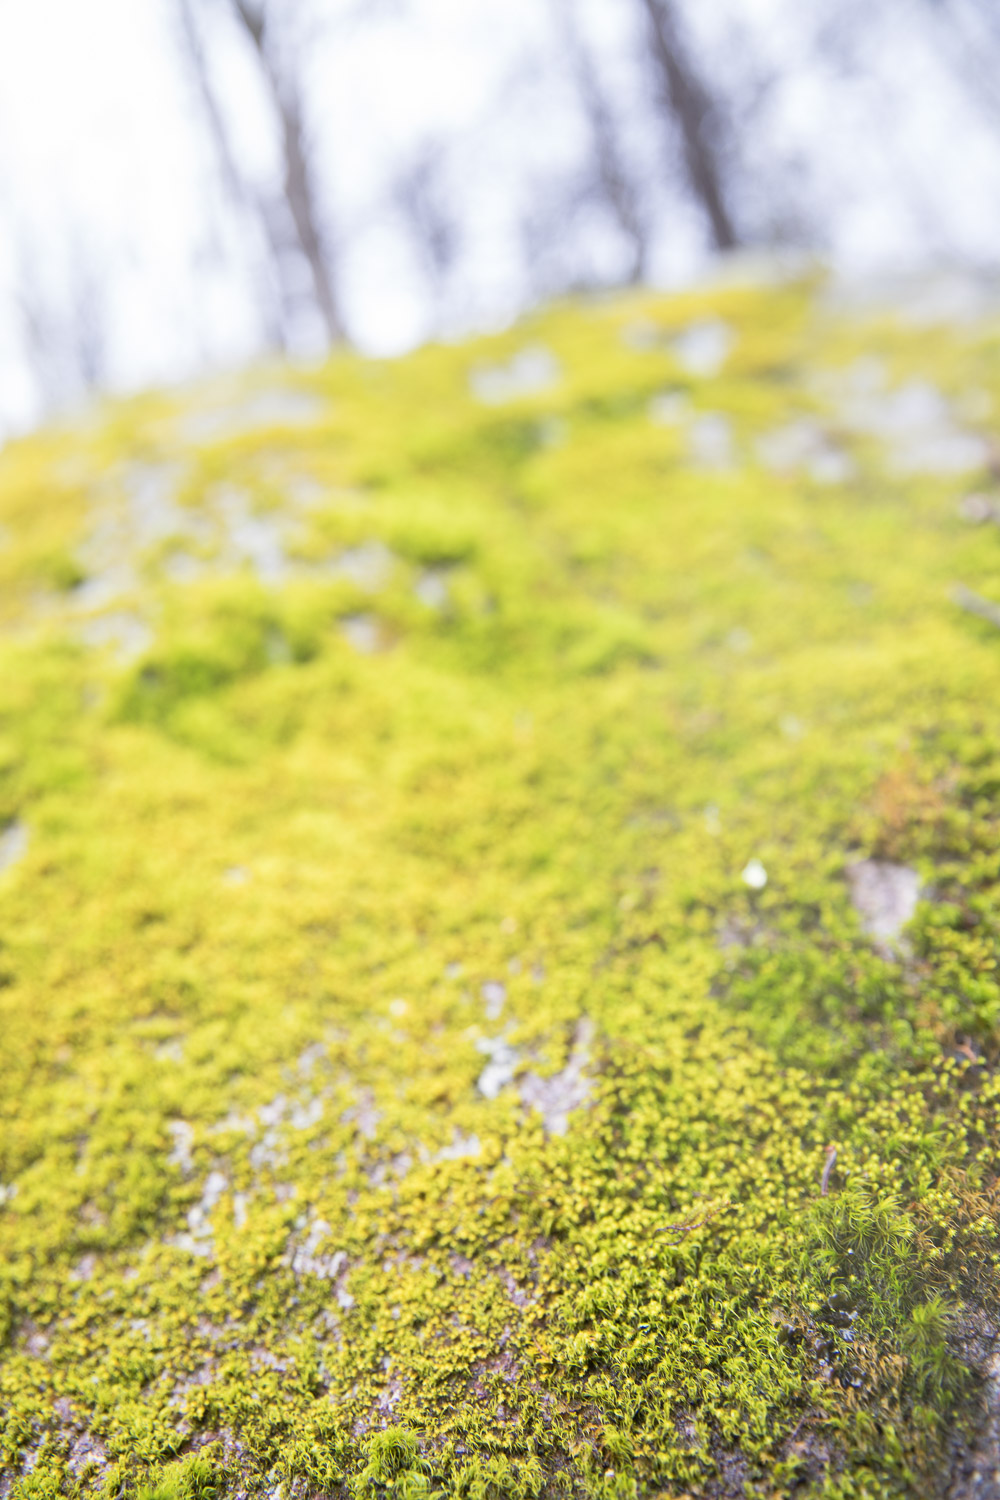 Moss grows on a stone